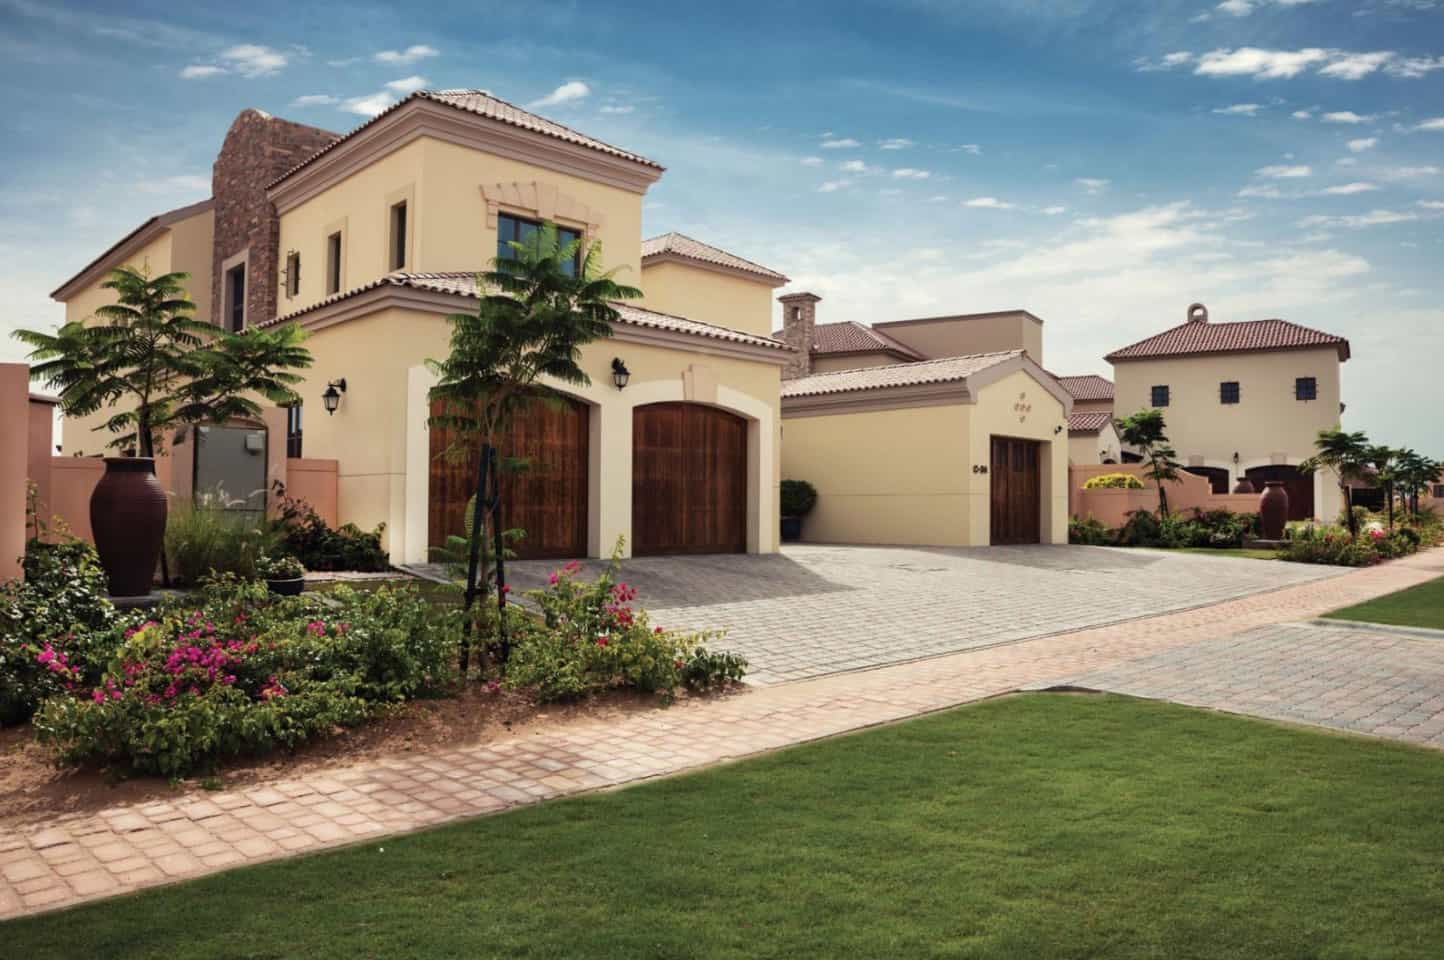 Villas for Sale and Rent in Jumeirah Golf Estates Dubai